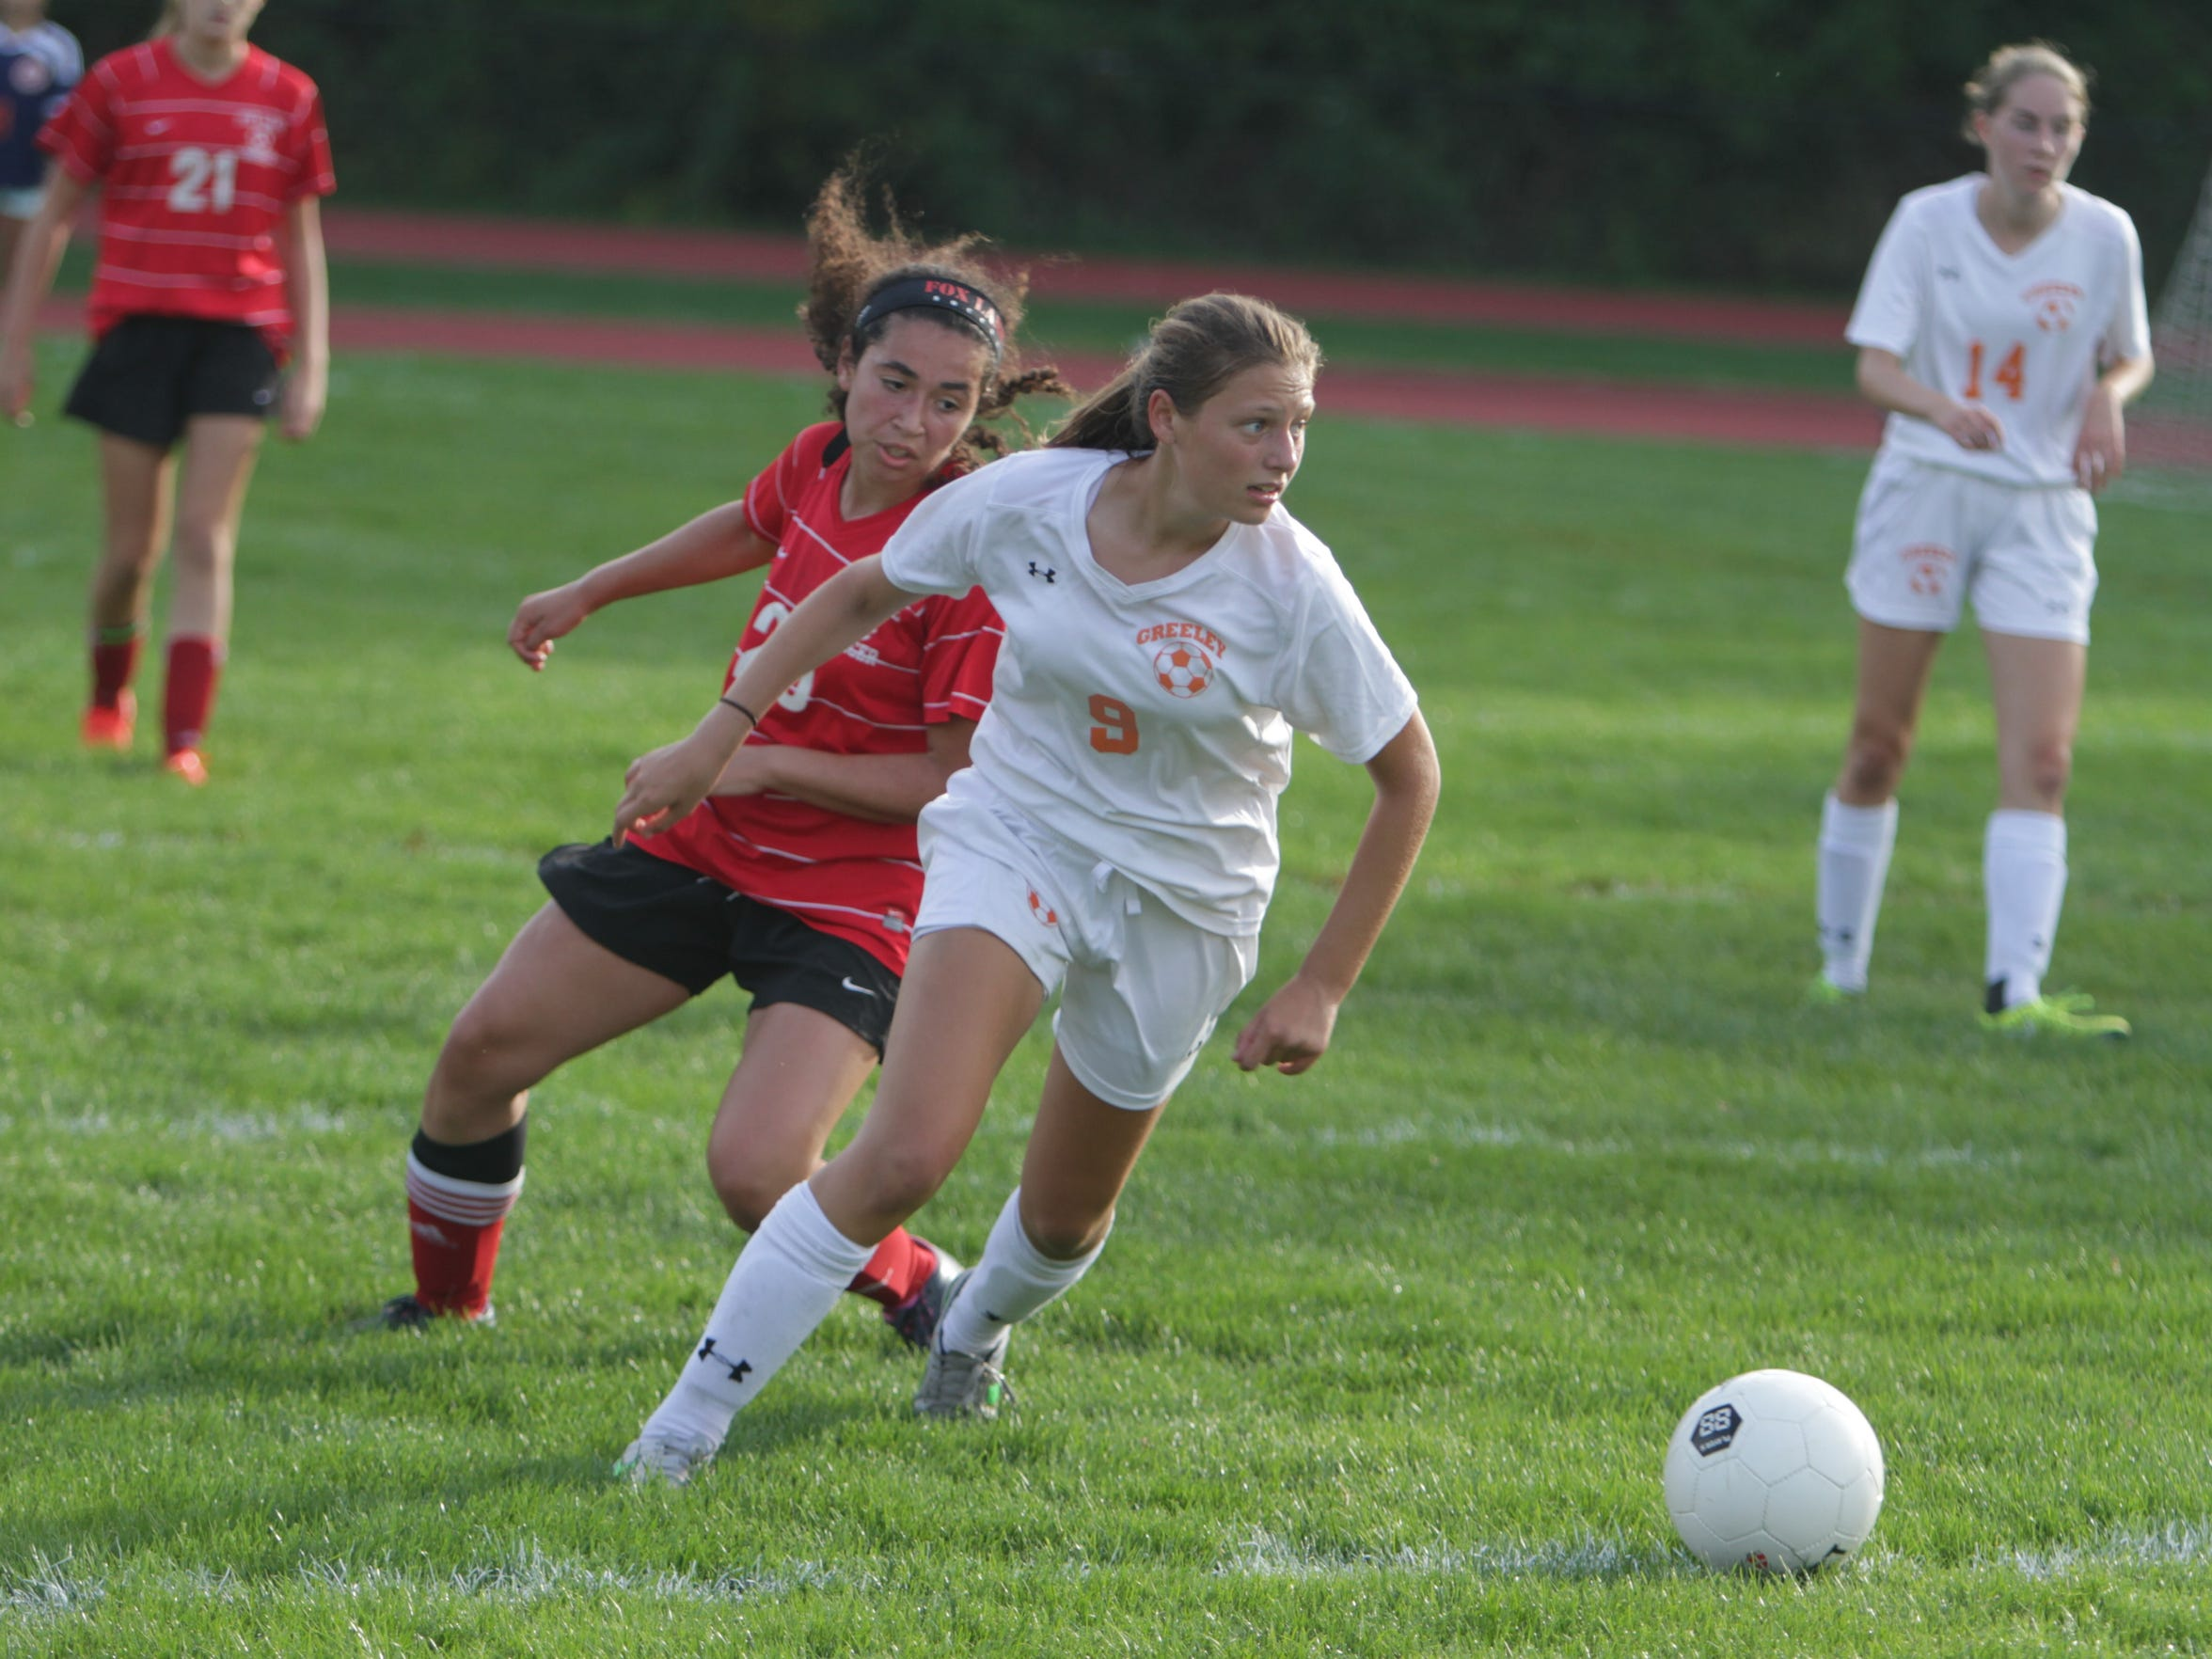 Stella Schwartz is a standout defender at Greeley.